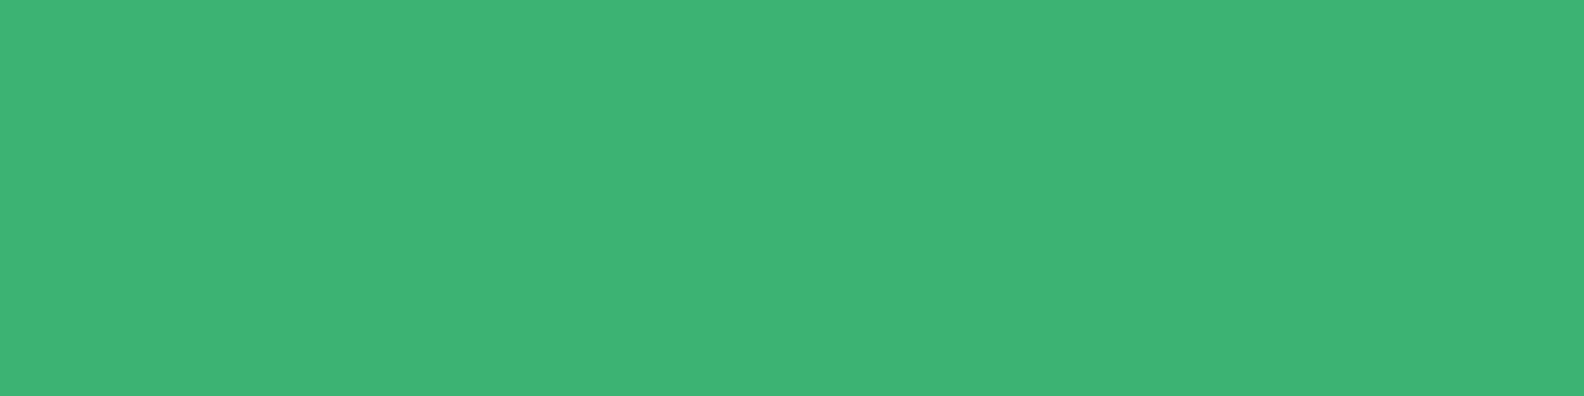 1584x396 Medium Sea Green Solid Color Background